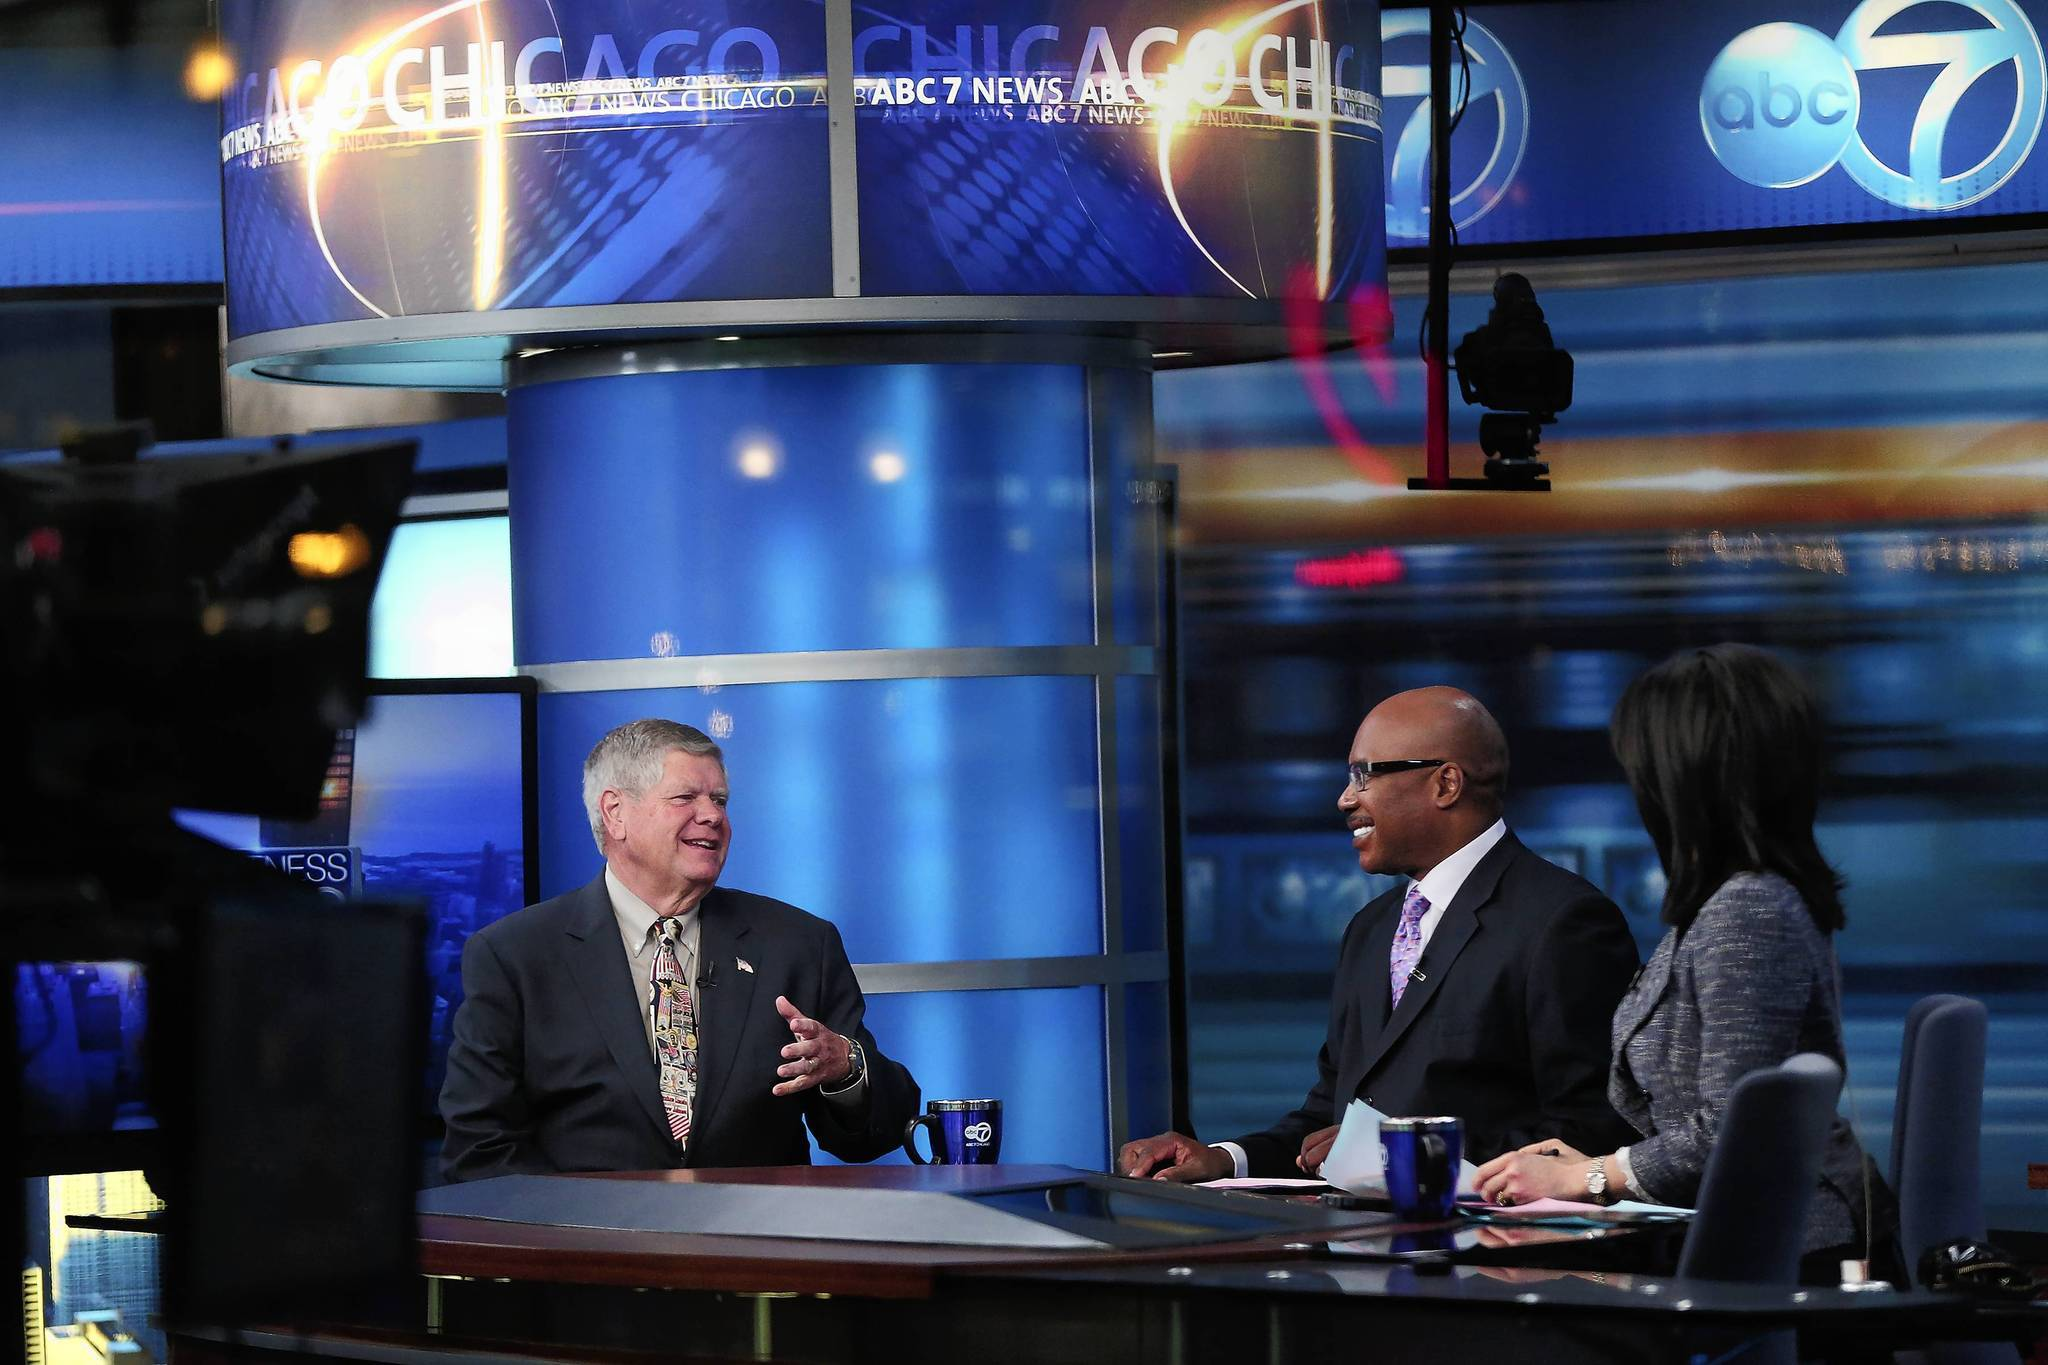 Newly-elected Illinois Republican U.S. Senate candidate Jim Oberweis is interviewed at the ABC 7 studios.